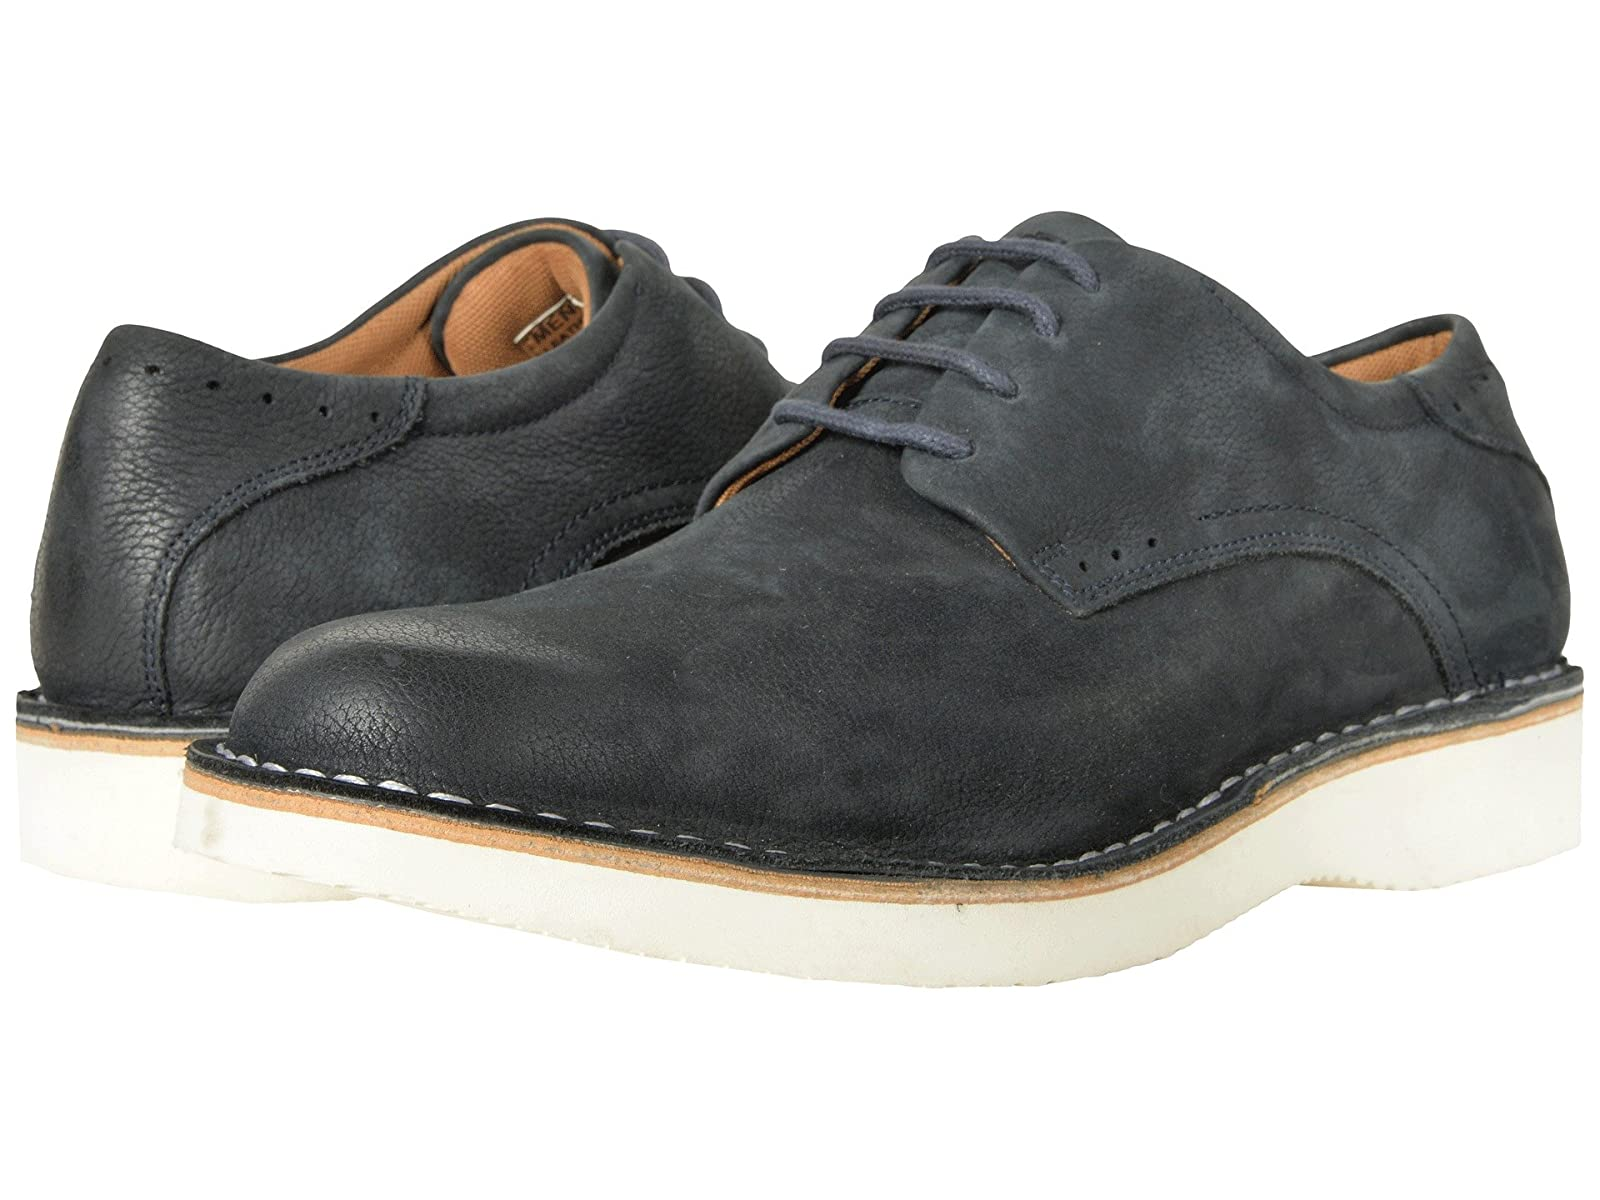 Florsheim Navigator Plain Toe OxfordCheap and distinctive eye-catching shoes